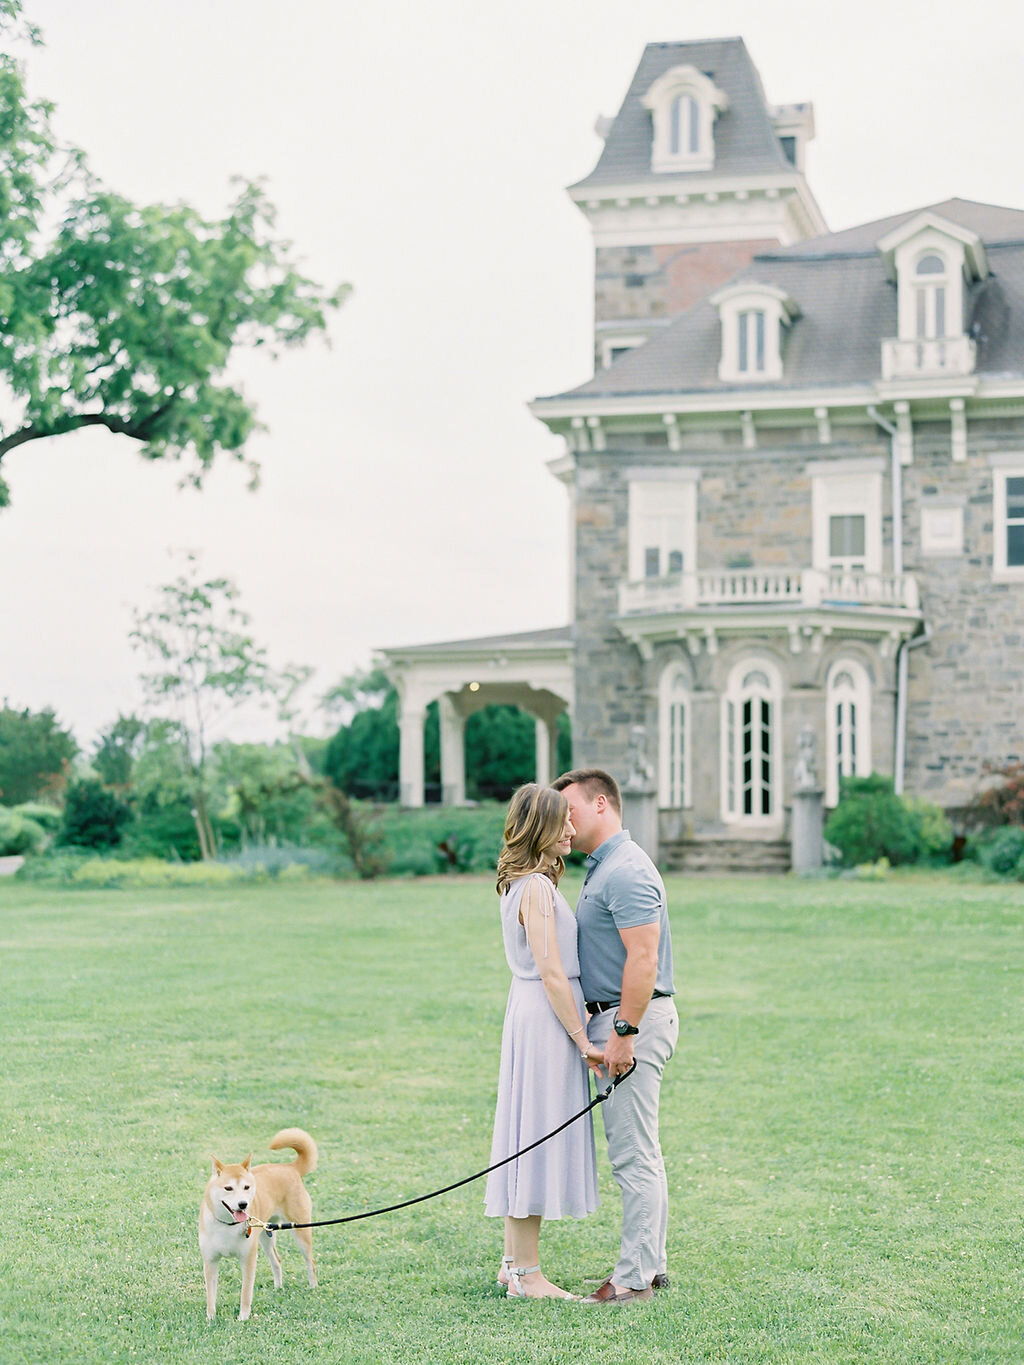 Cylburn Arboretum and Tribeca Engagement Photography Session by Vicki Grafton on East Made Co Baltimore Wedding Planner Blog-4.jpg